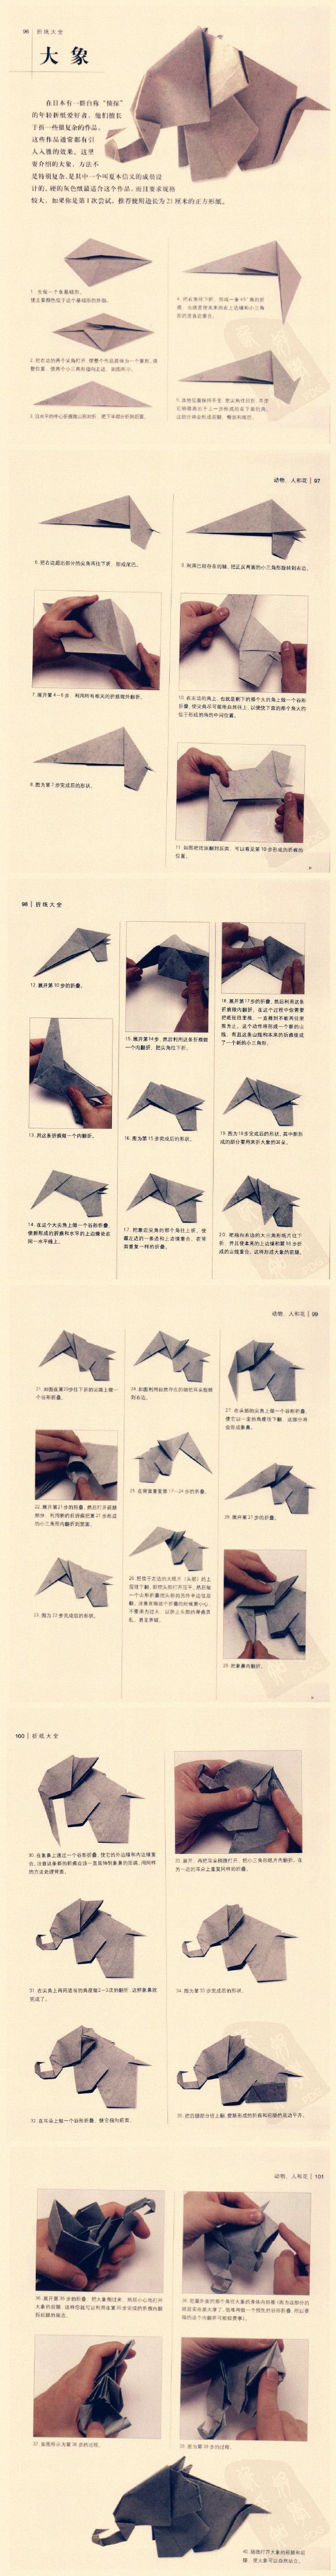 DIY Origami Paper Elephant Tutorial